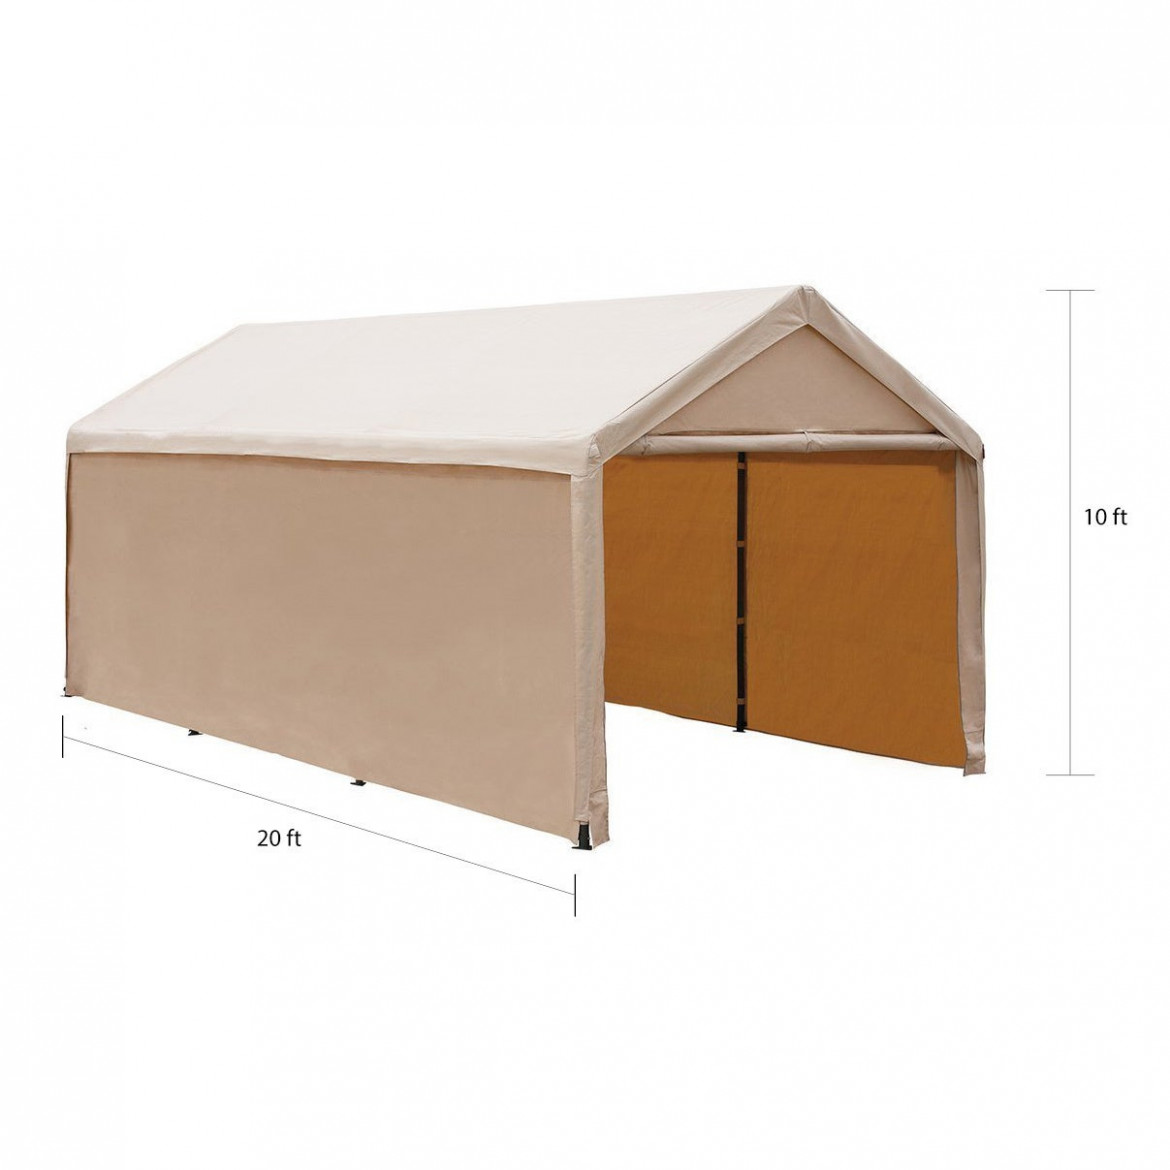 Abba Patio 11 X 11 Feet, Steel Framed Enclosed Canopy Carport/Shelter, Beige Wooden Carport Kits For Sale Canada